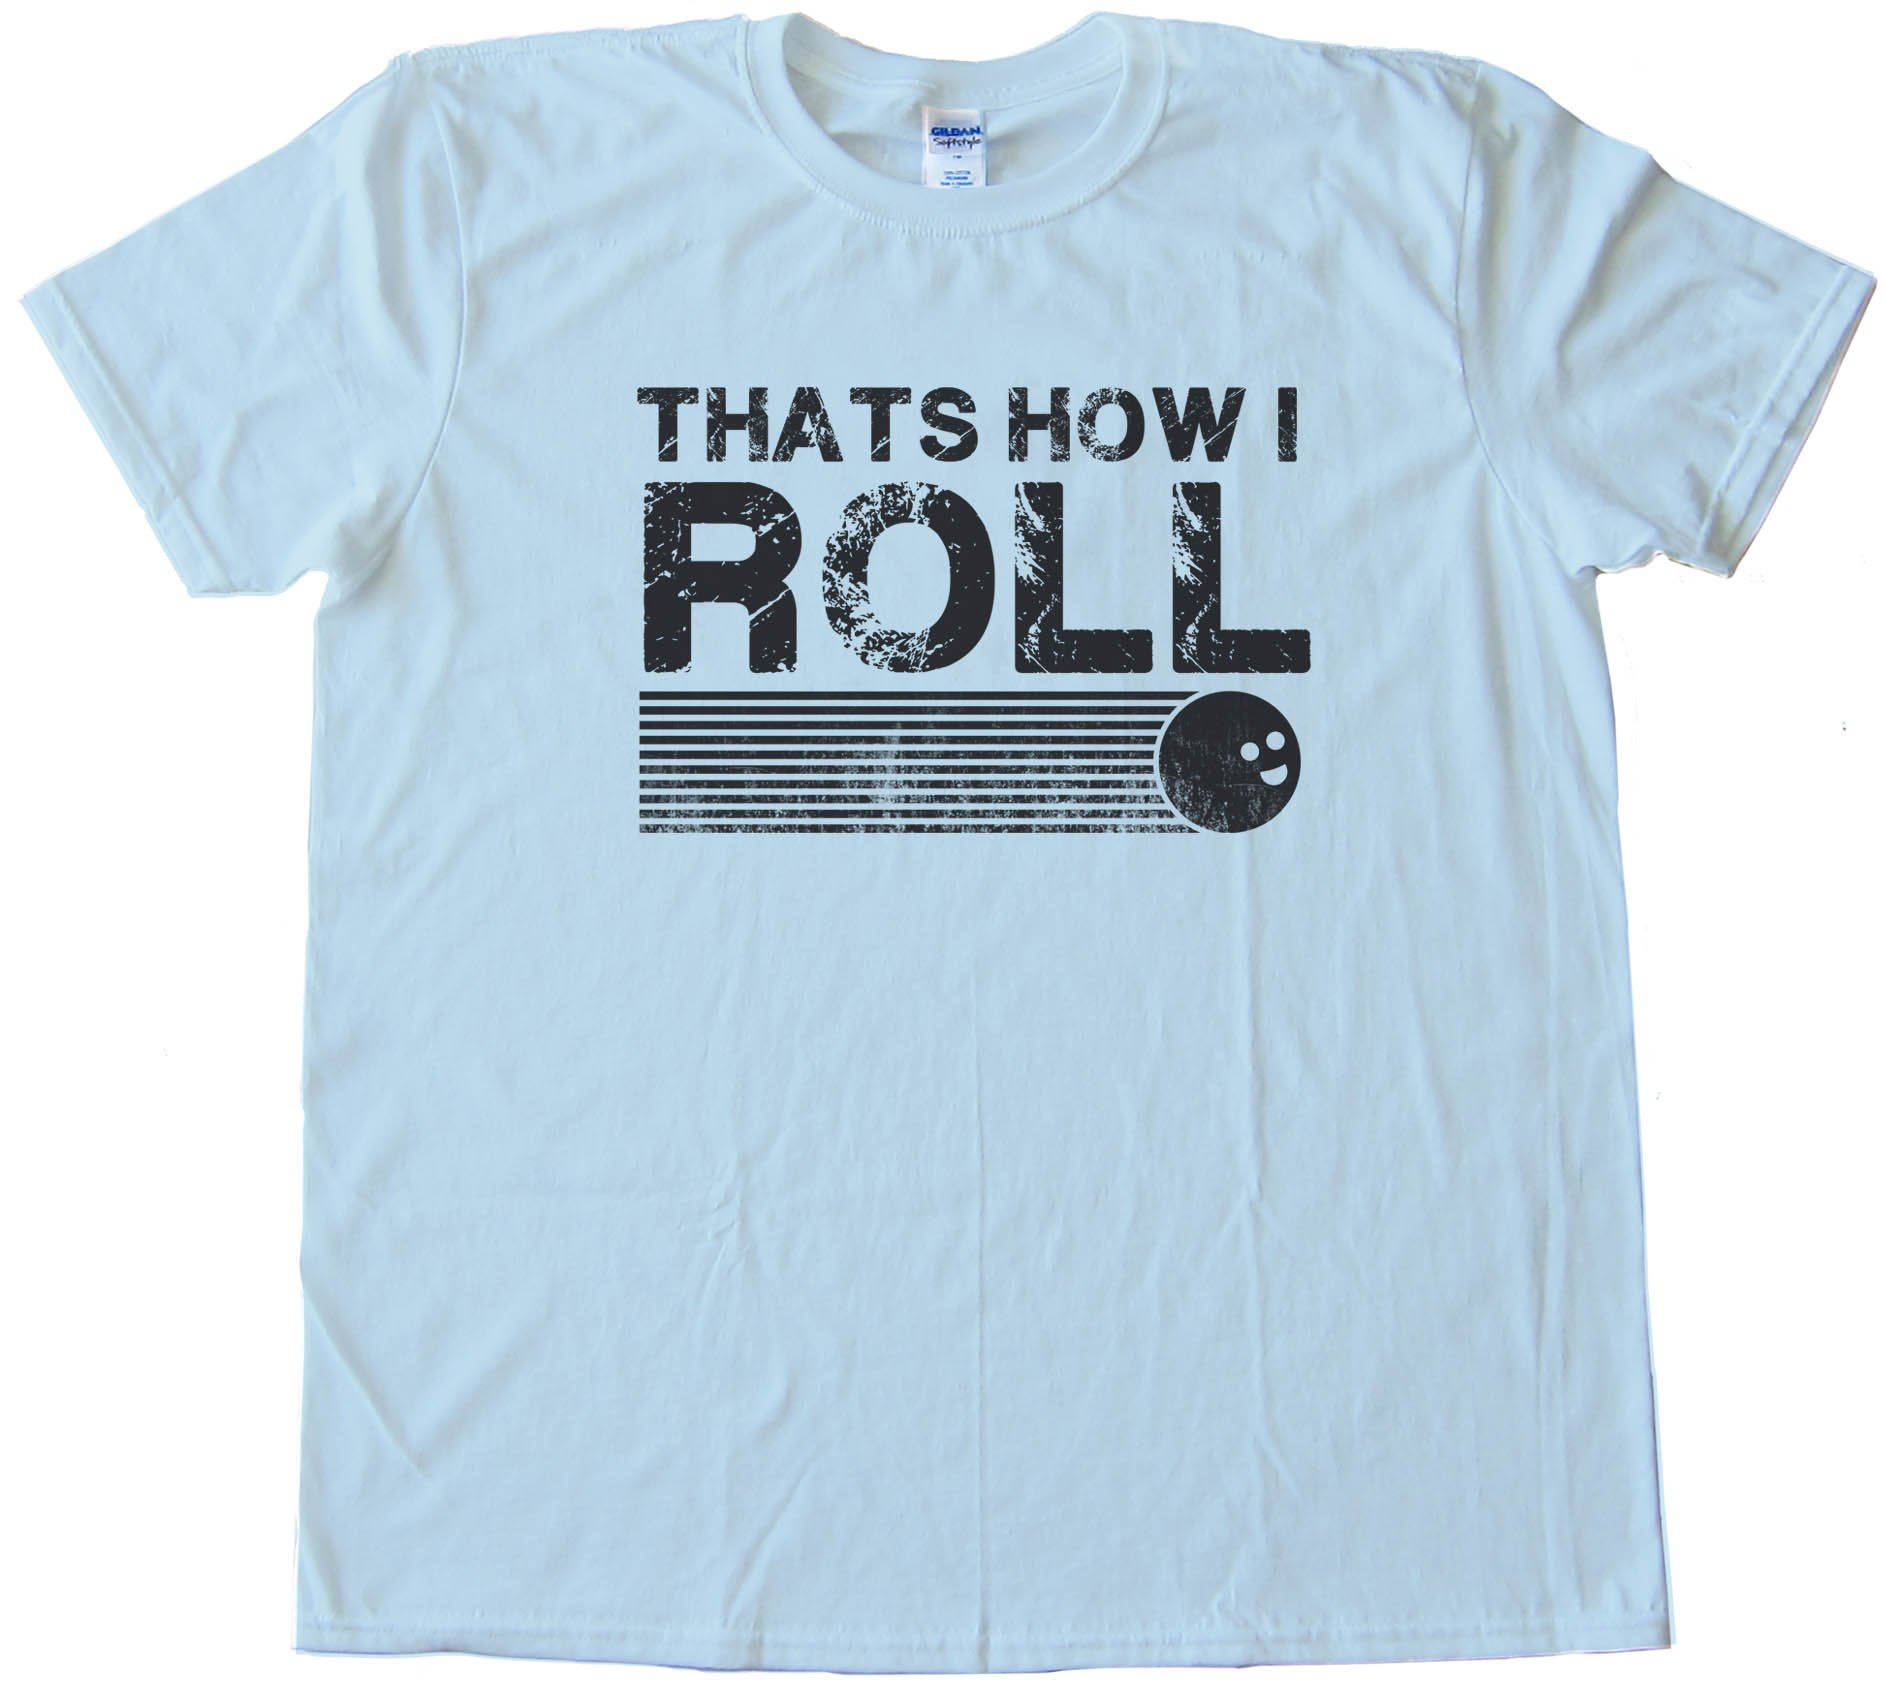 That'S How I Roll - Retro Bowling - Bowlers - Tee Shirt